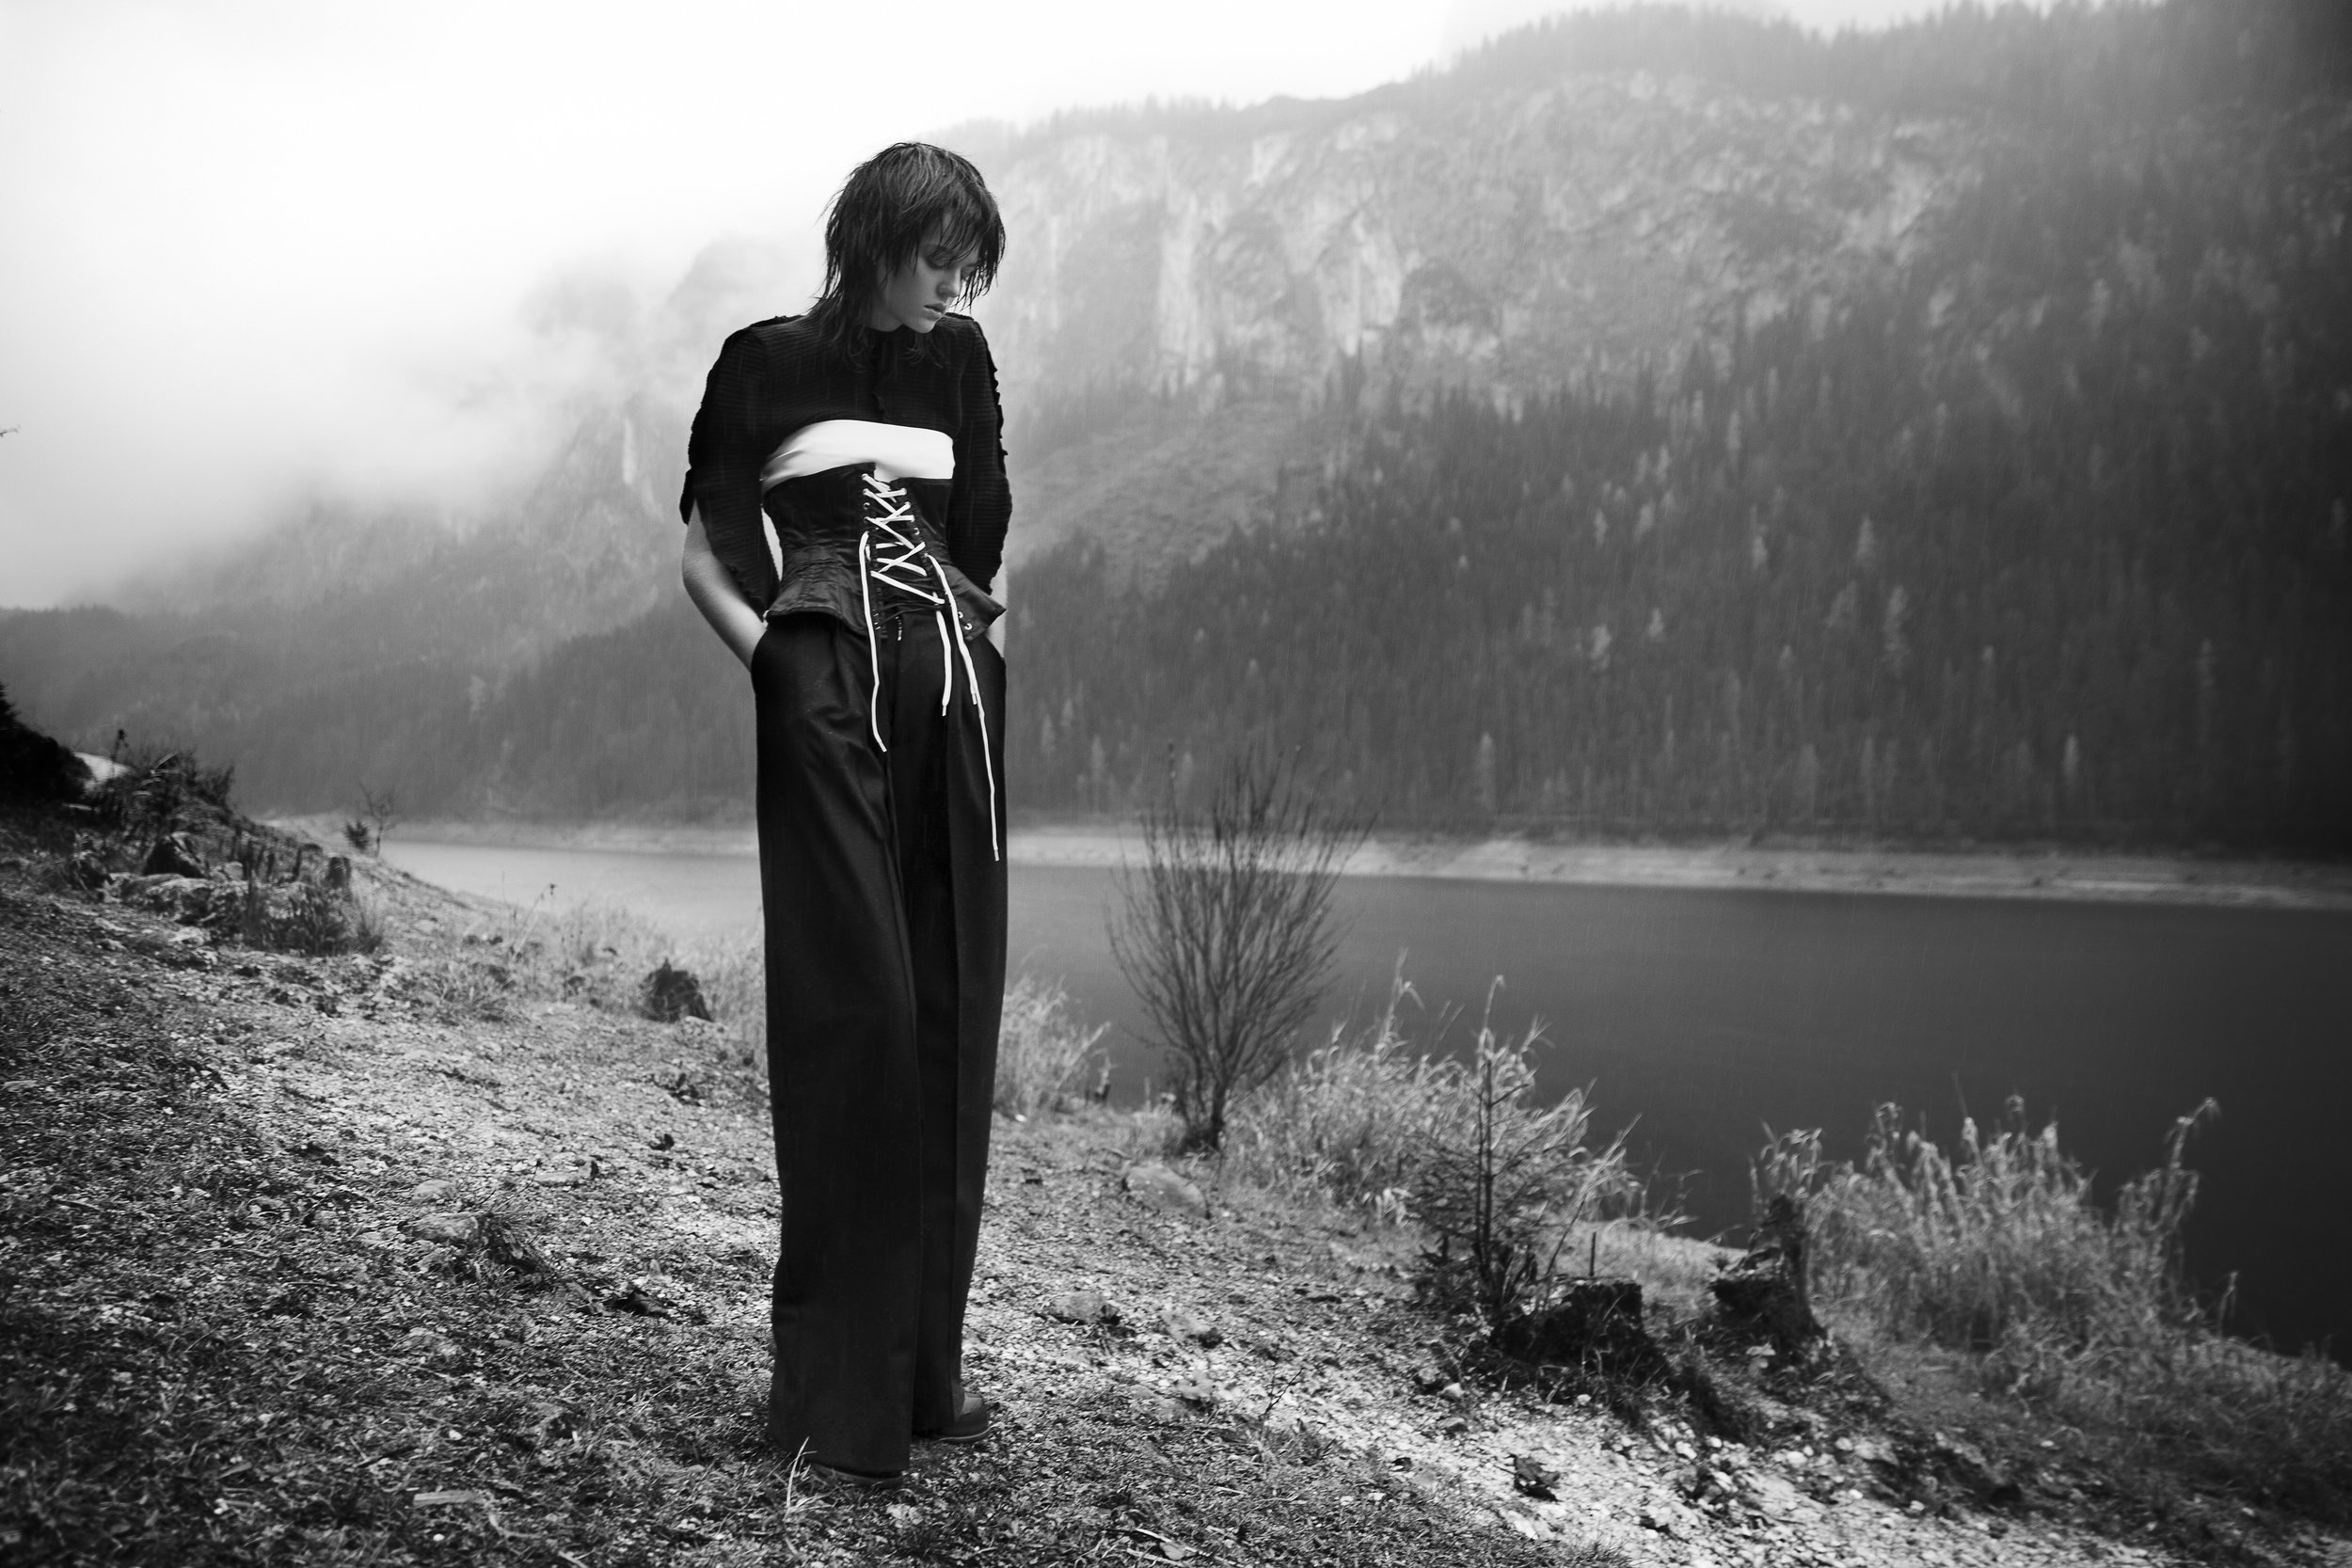 Black ribbed sweater &white bra made of coated fabric by Lea Peckre | Customised corset by stylist | Black Woolen wide leg trousers by Moon Young Hee | Leather ankle boots by Göran Horal